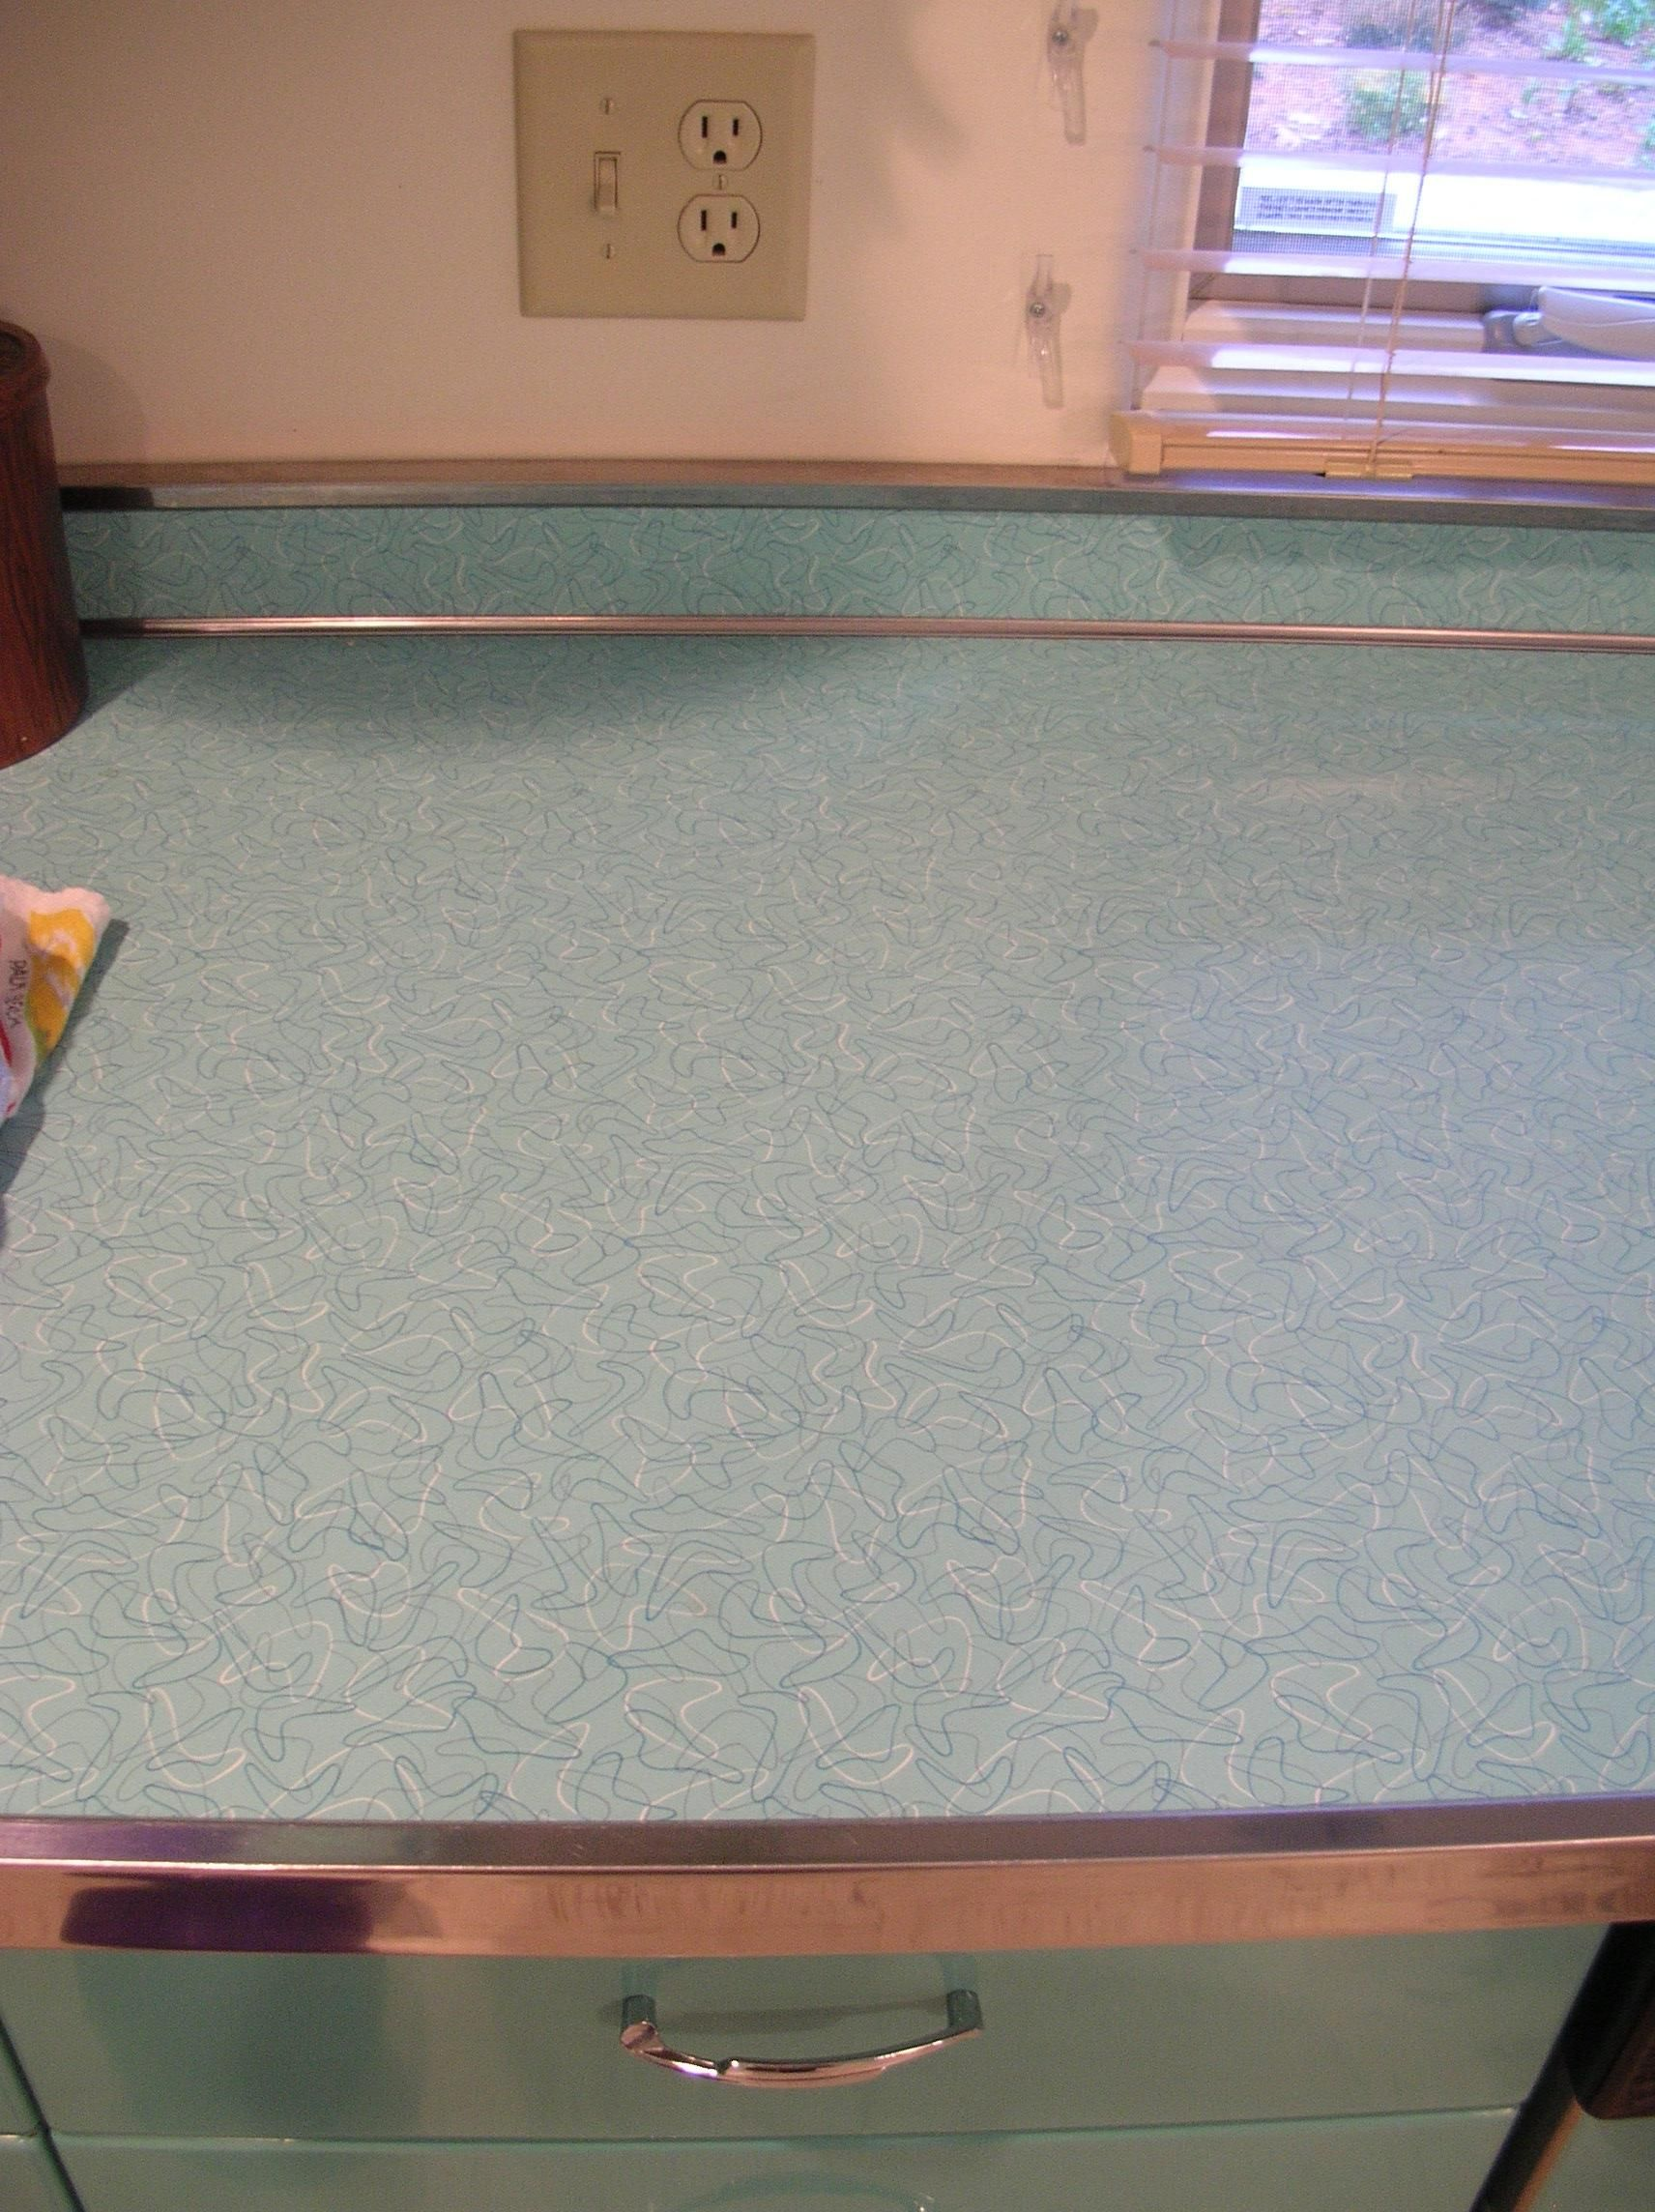 sheets pin edging steel countertop stainless aqua formica laminate metal boomerang your for countertops vintage